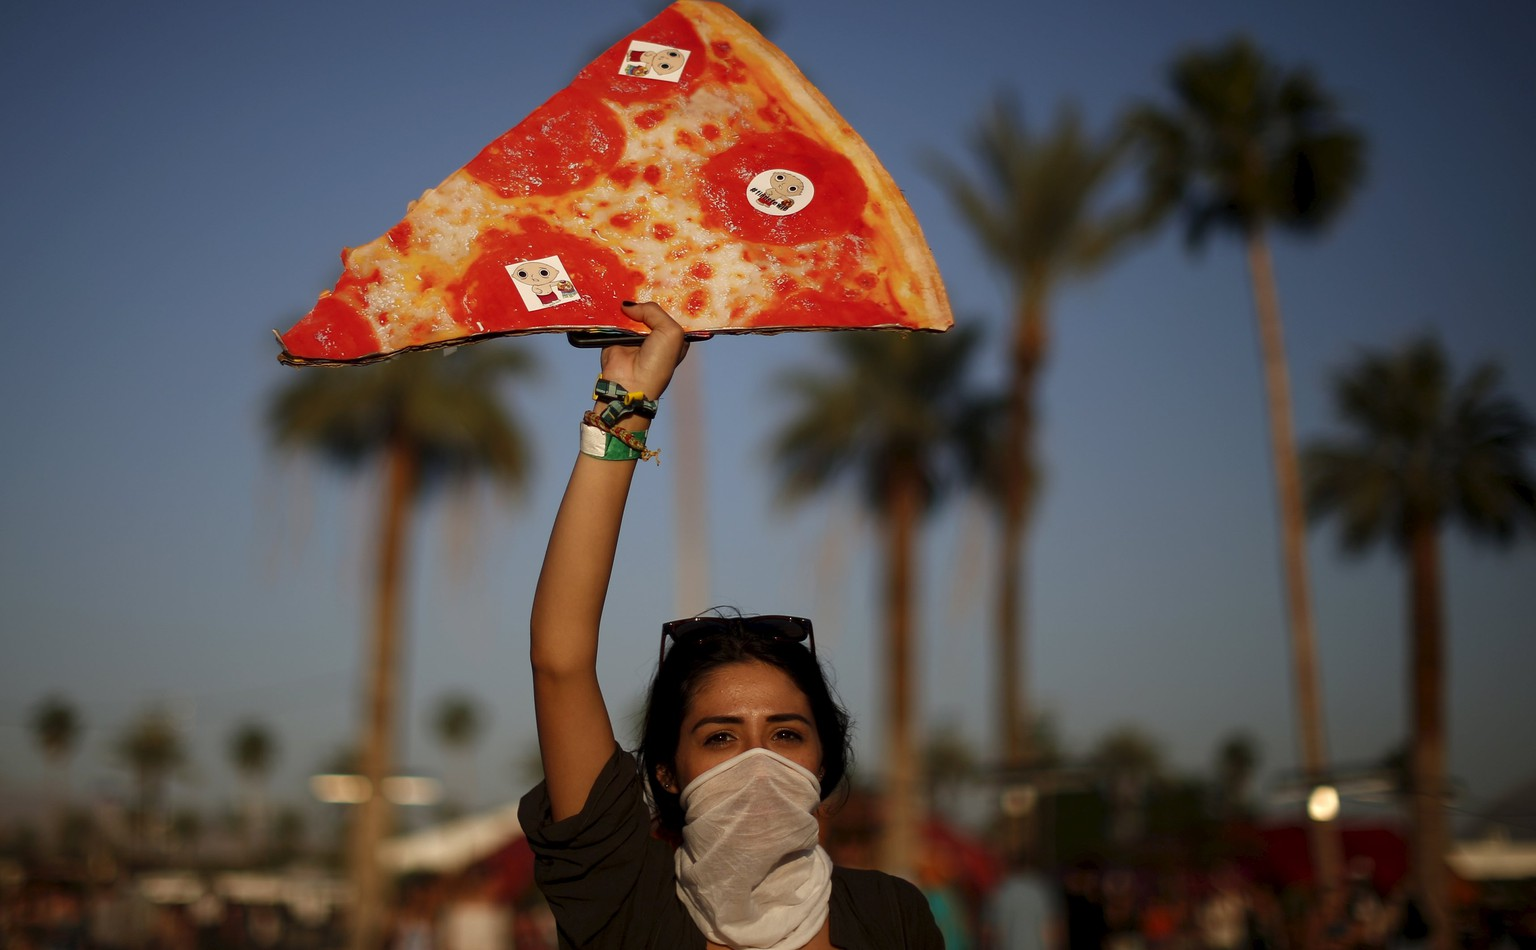 A woman carries a replica slice of pizza, in order to find separated friends in the crowd, at the Coachella Valley Music and Arts Festival in Indio, California April 12, 2015. REUTERS/Lucy Nicholson